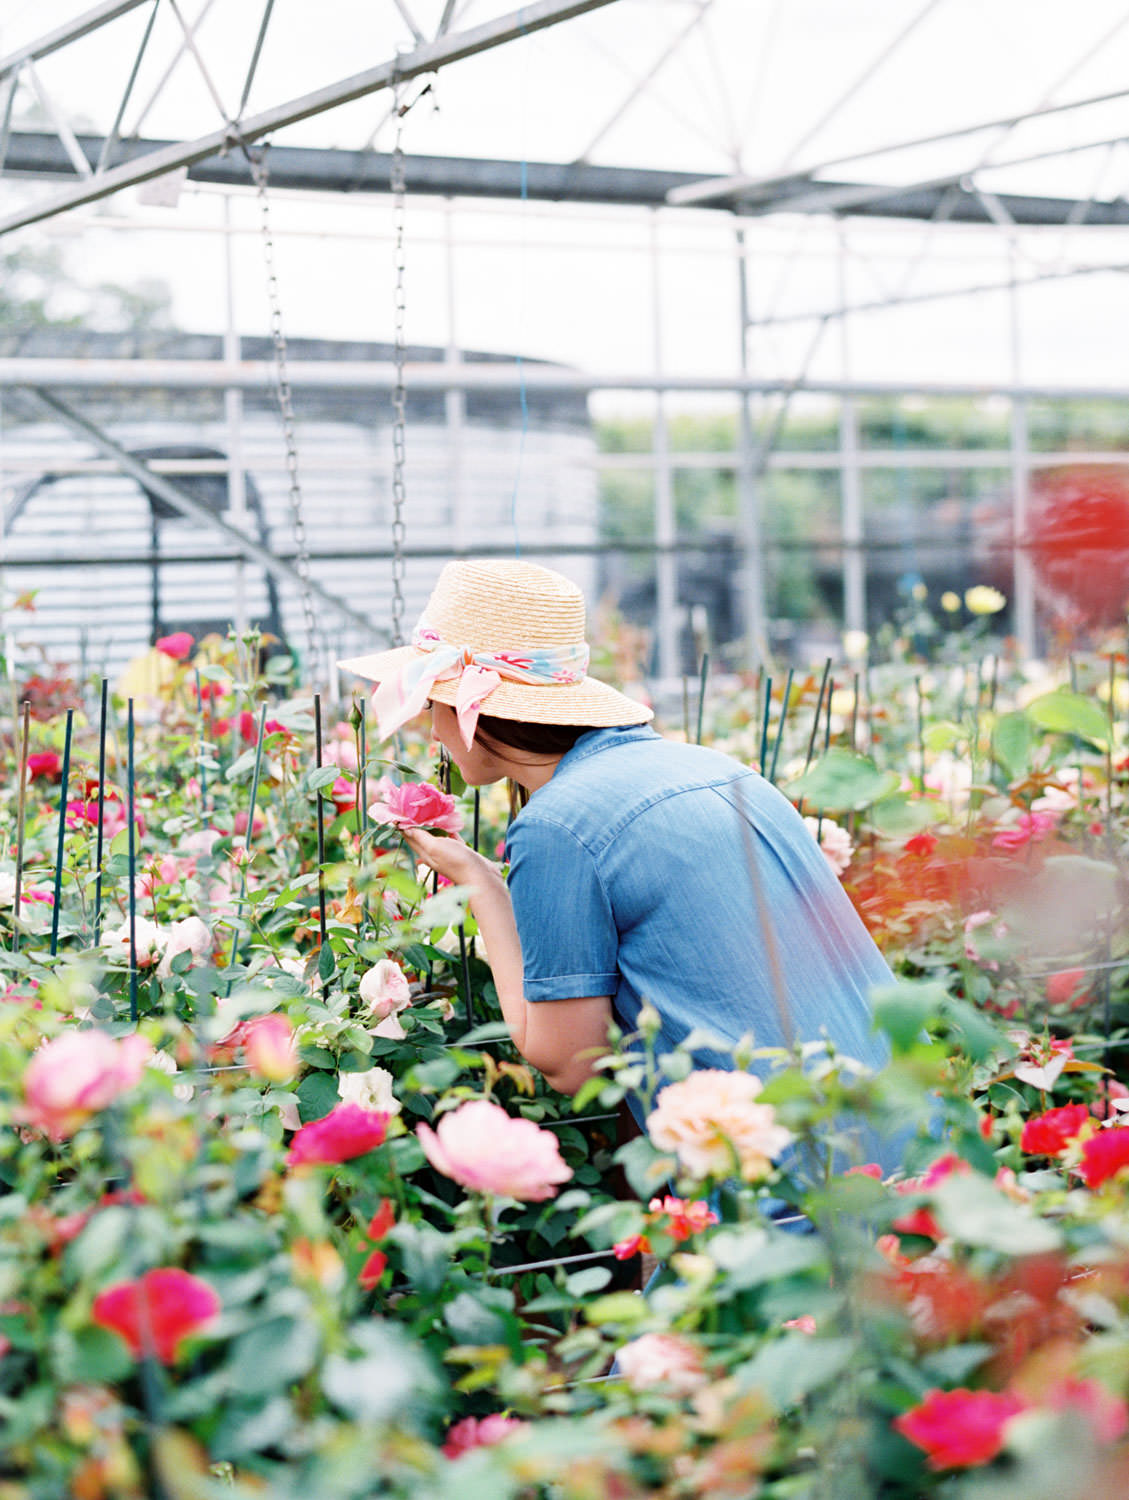 Woman spelling roses in David Austin Roses greenhouse in a sunhat on the Flutter Magazine Retreat in the Cotswolds. Film by Cavin Elizabeth Photography